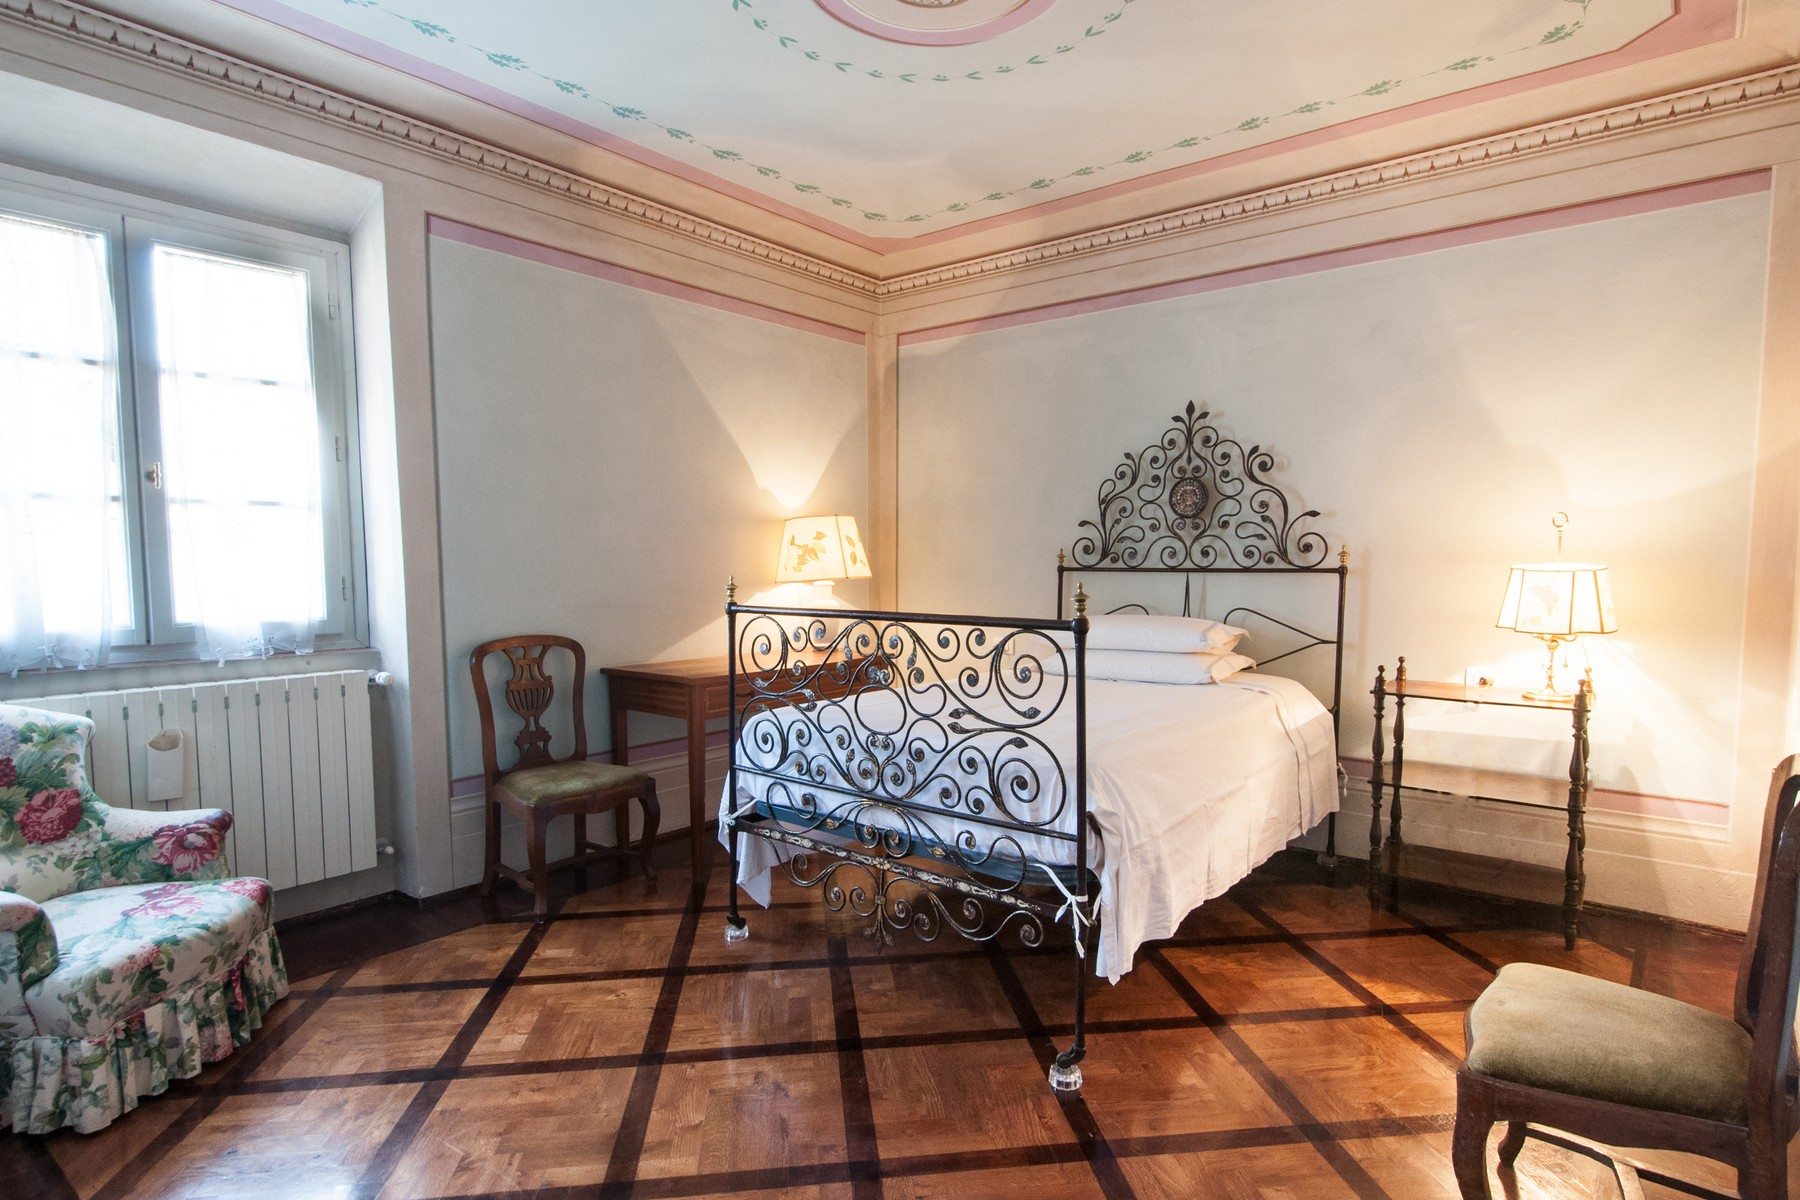 Additional photo for property listing at Prestigious apartment with frescoes Piazza San Francesco Prato, Prato 59100 Italia